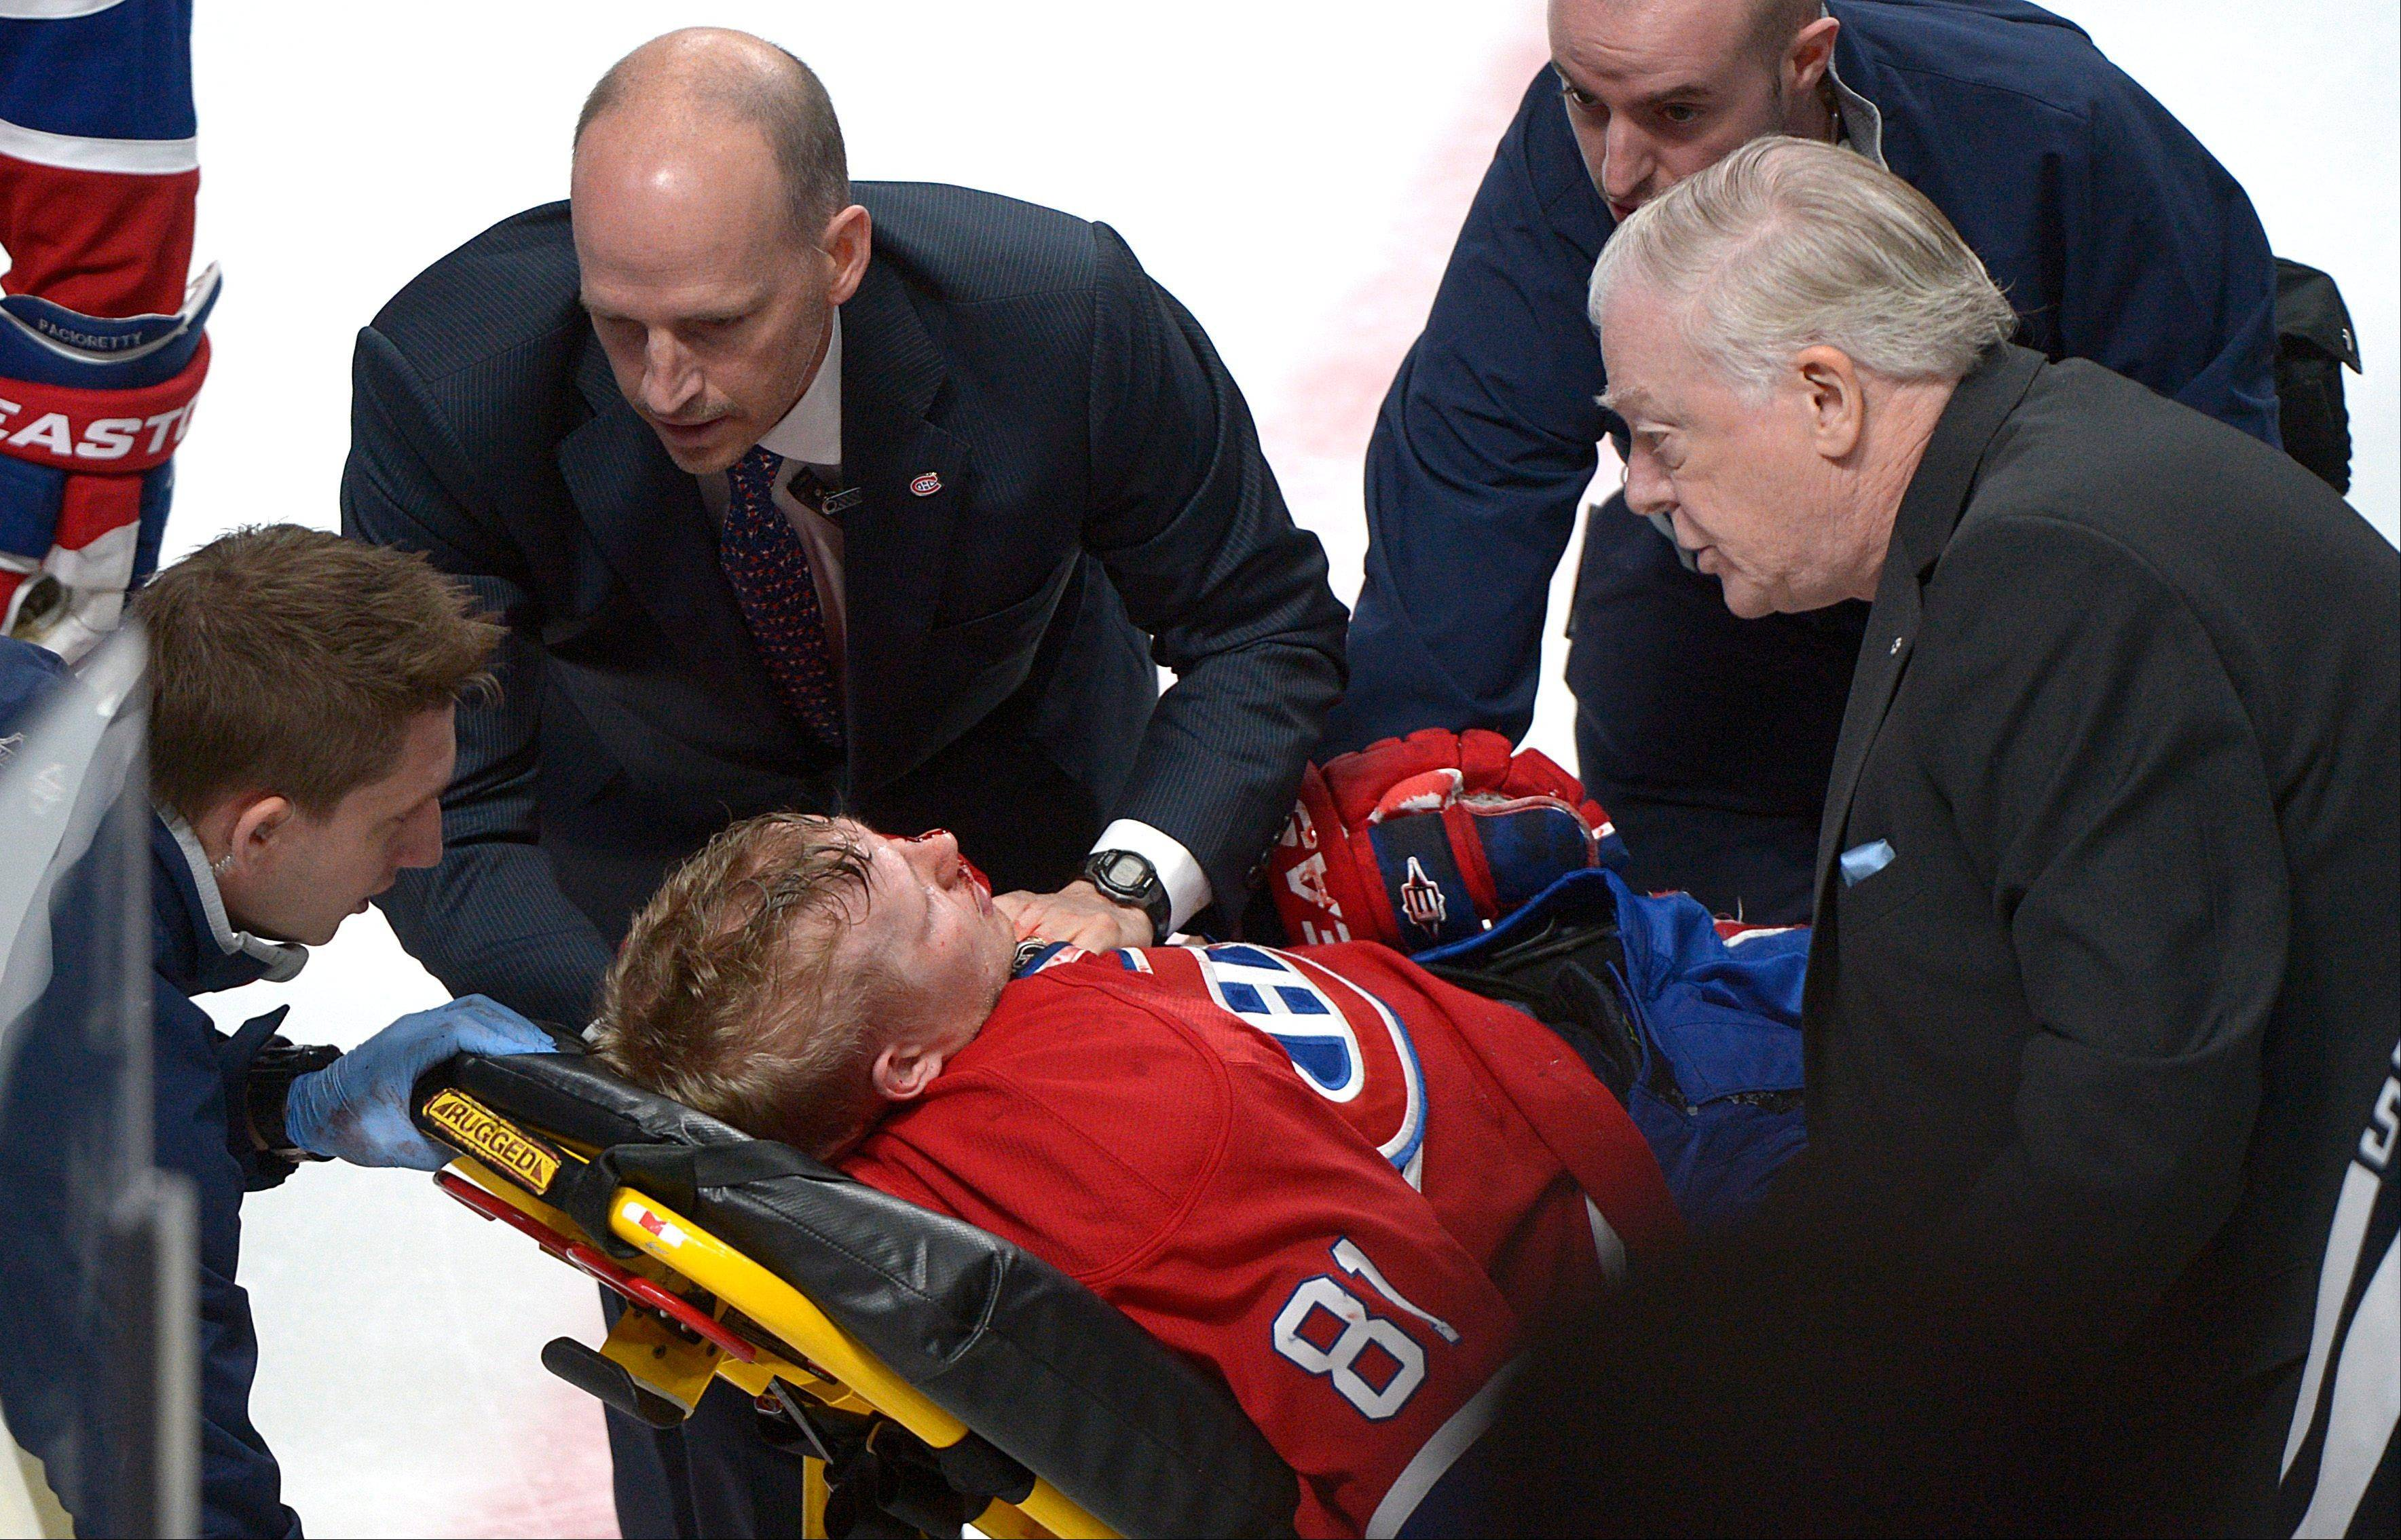 Montreal Canadiens' Lars Eller is taken off the ice Thursday following a hit by Ottawa Senators' Eric Gryba during second period play in Montreal. Eller suffered a concussion and facial fractures.